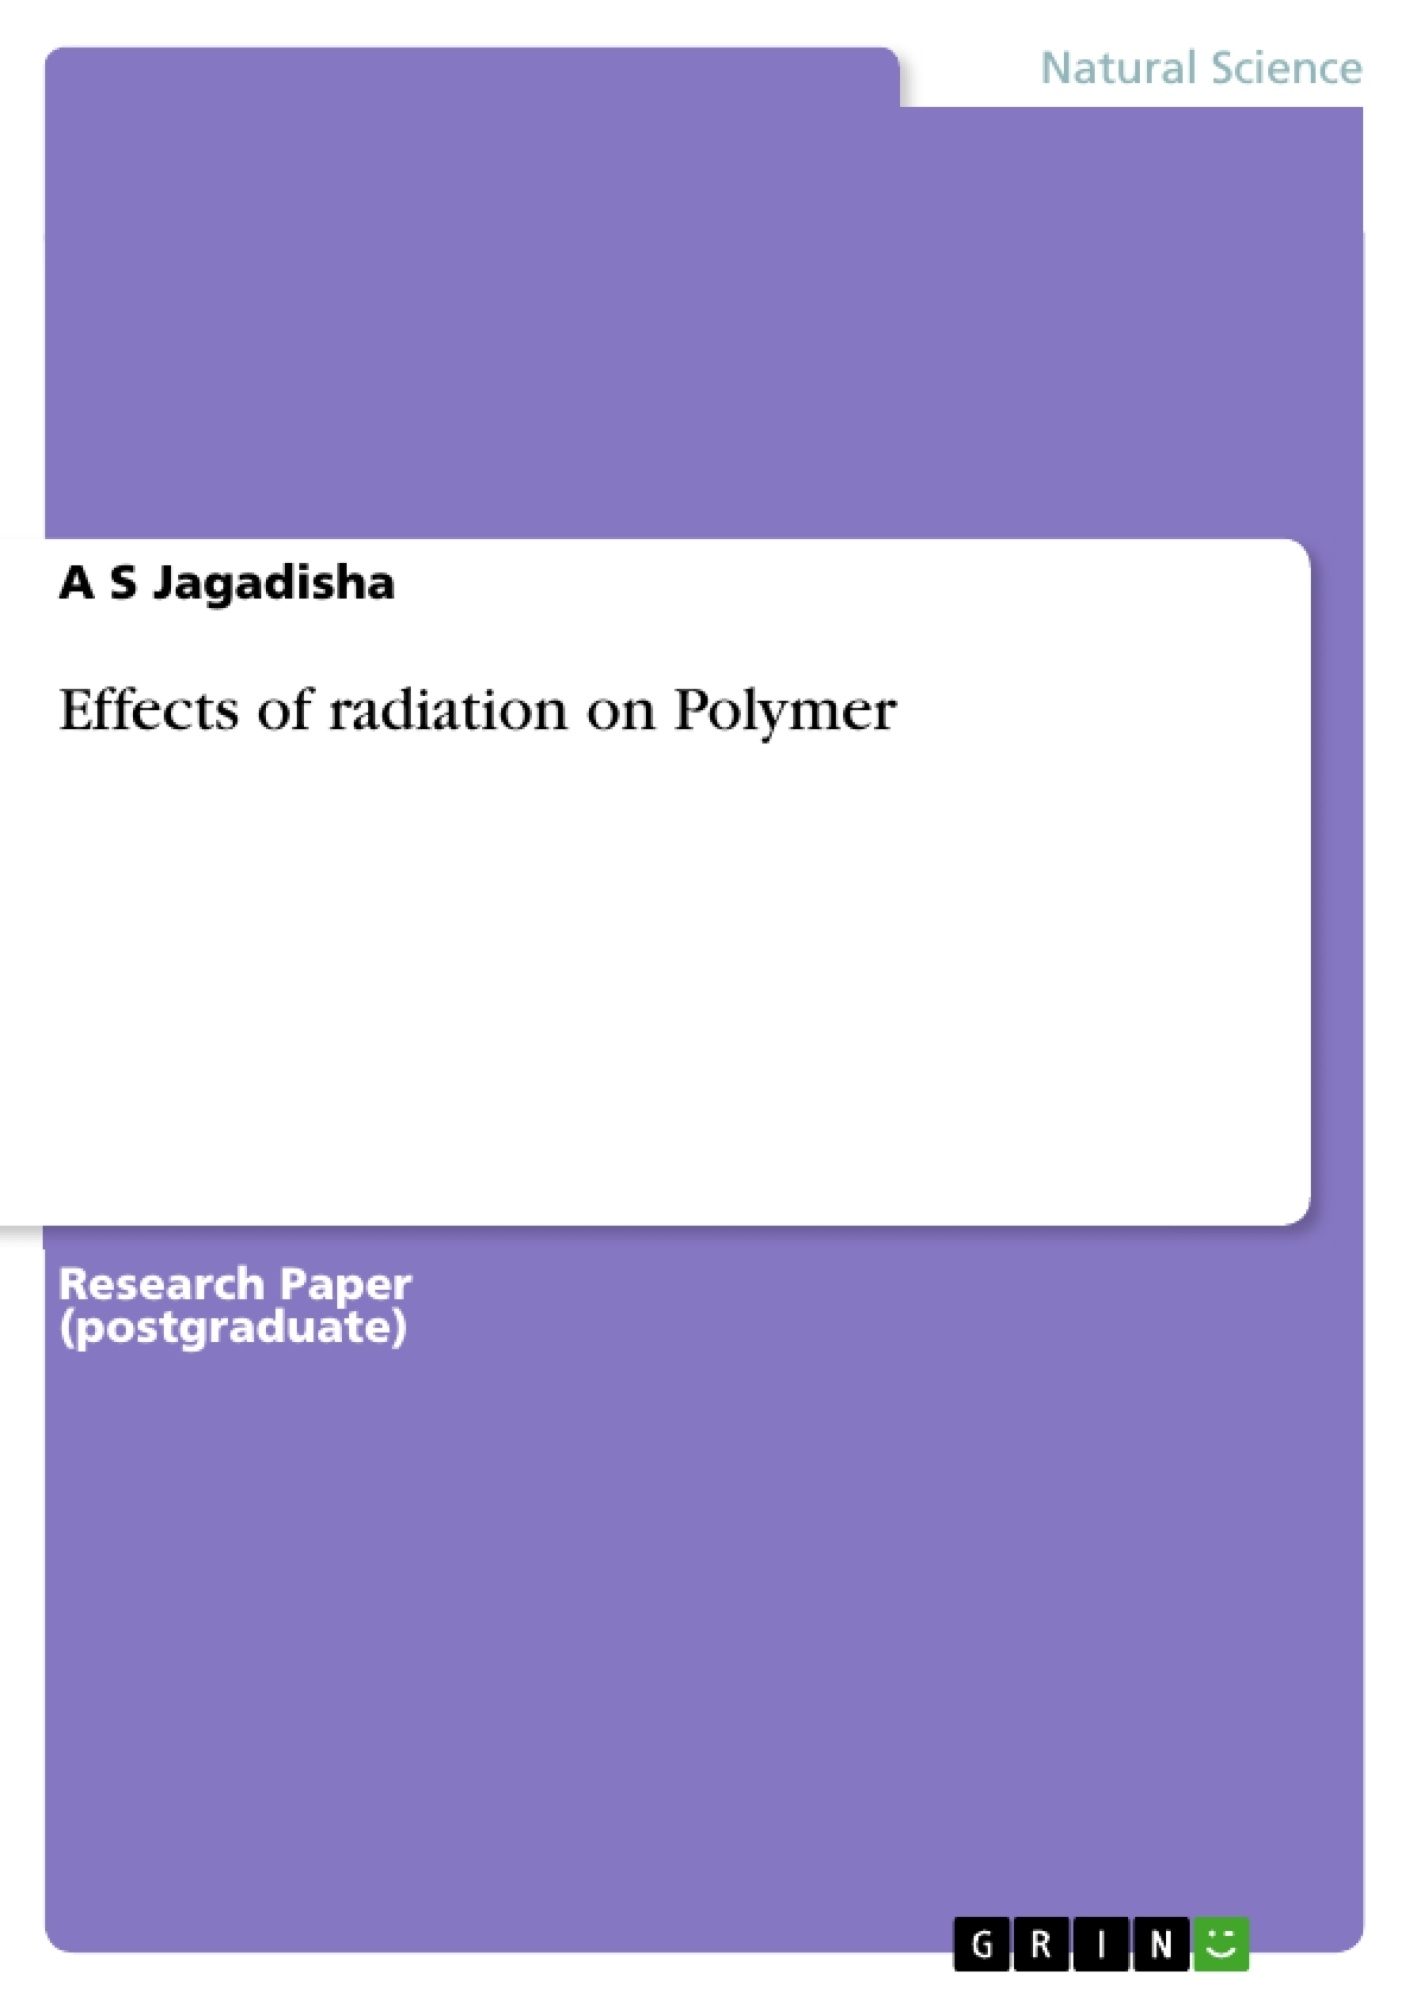 Title: Effects of radiation on Polymer